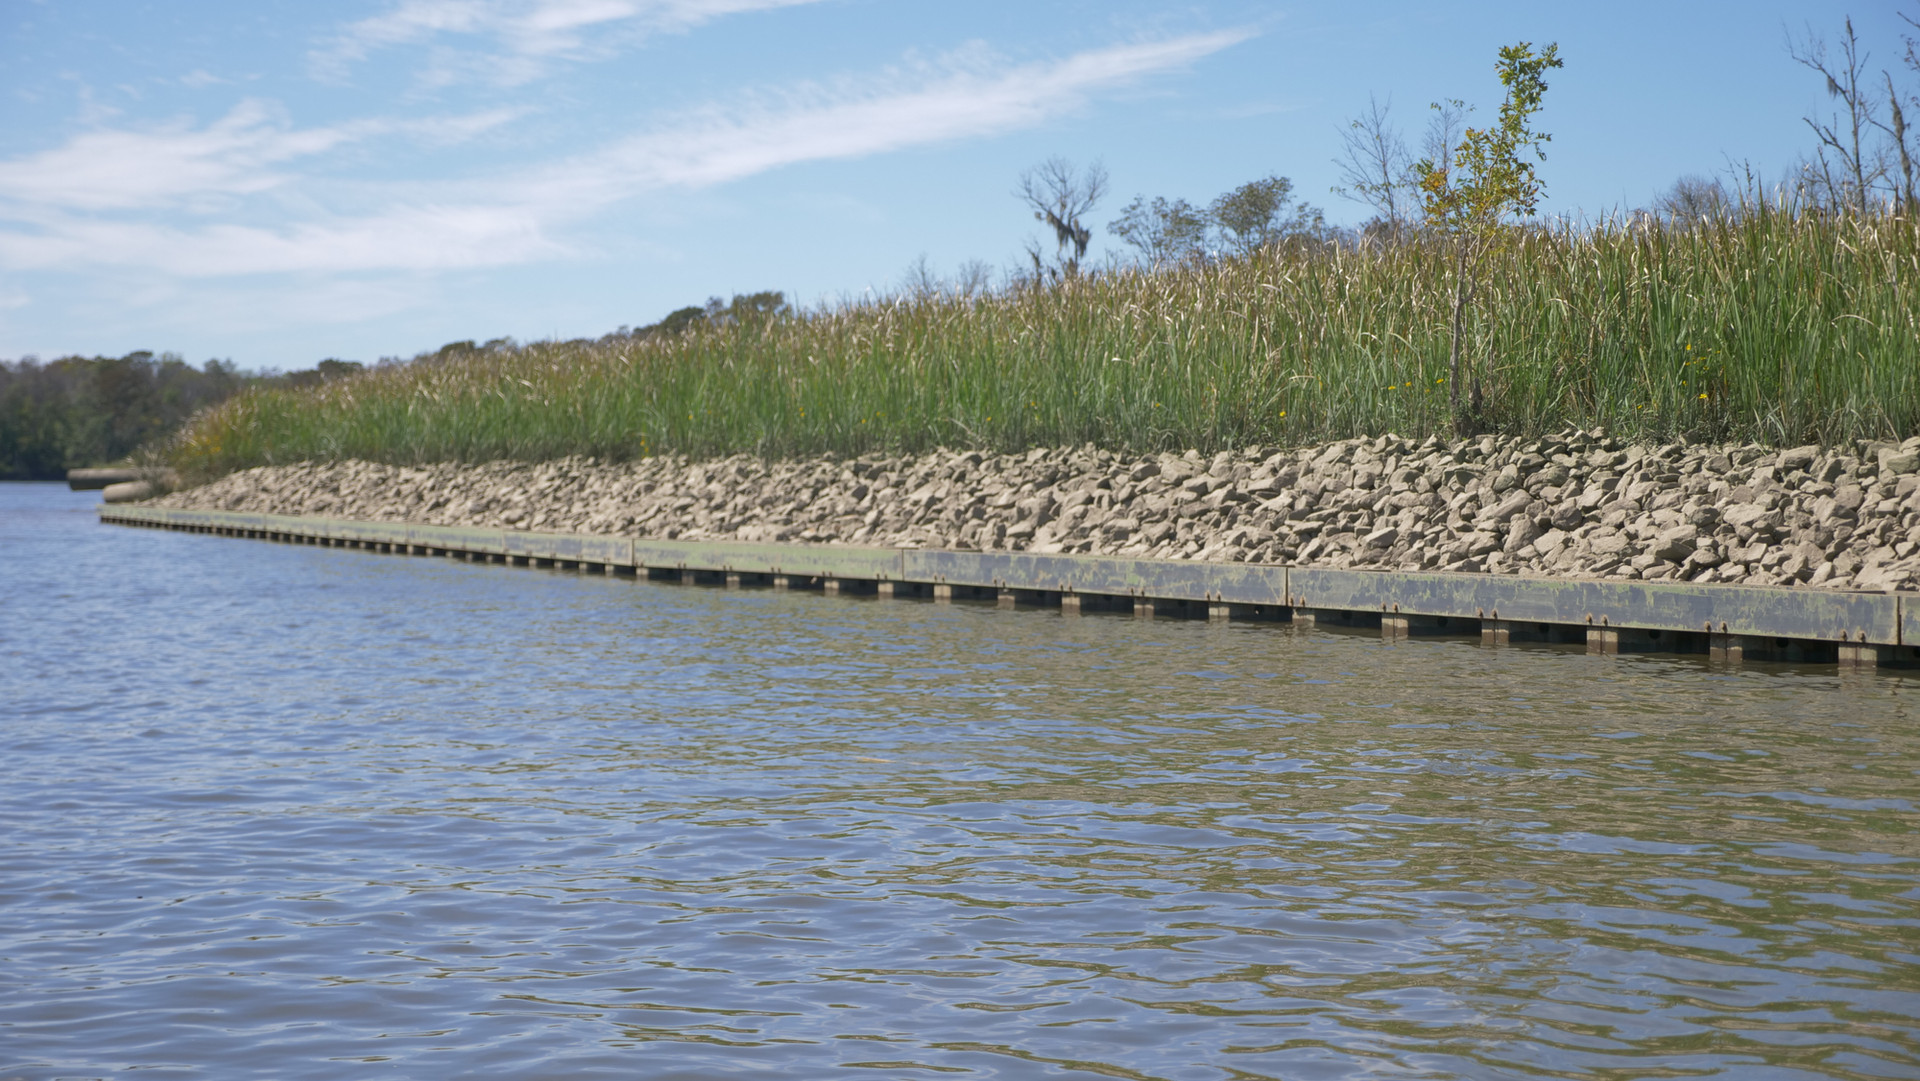 McCoys Cut - Sheet Pile Wall with Steel